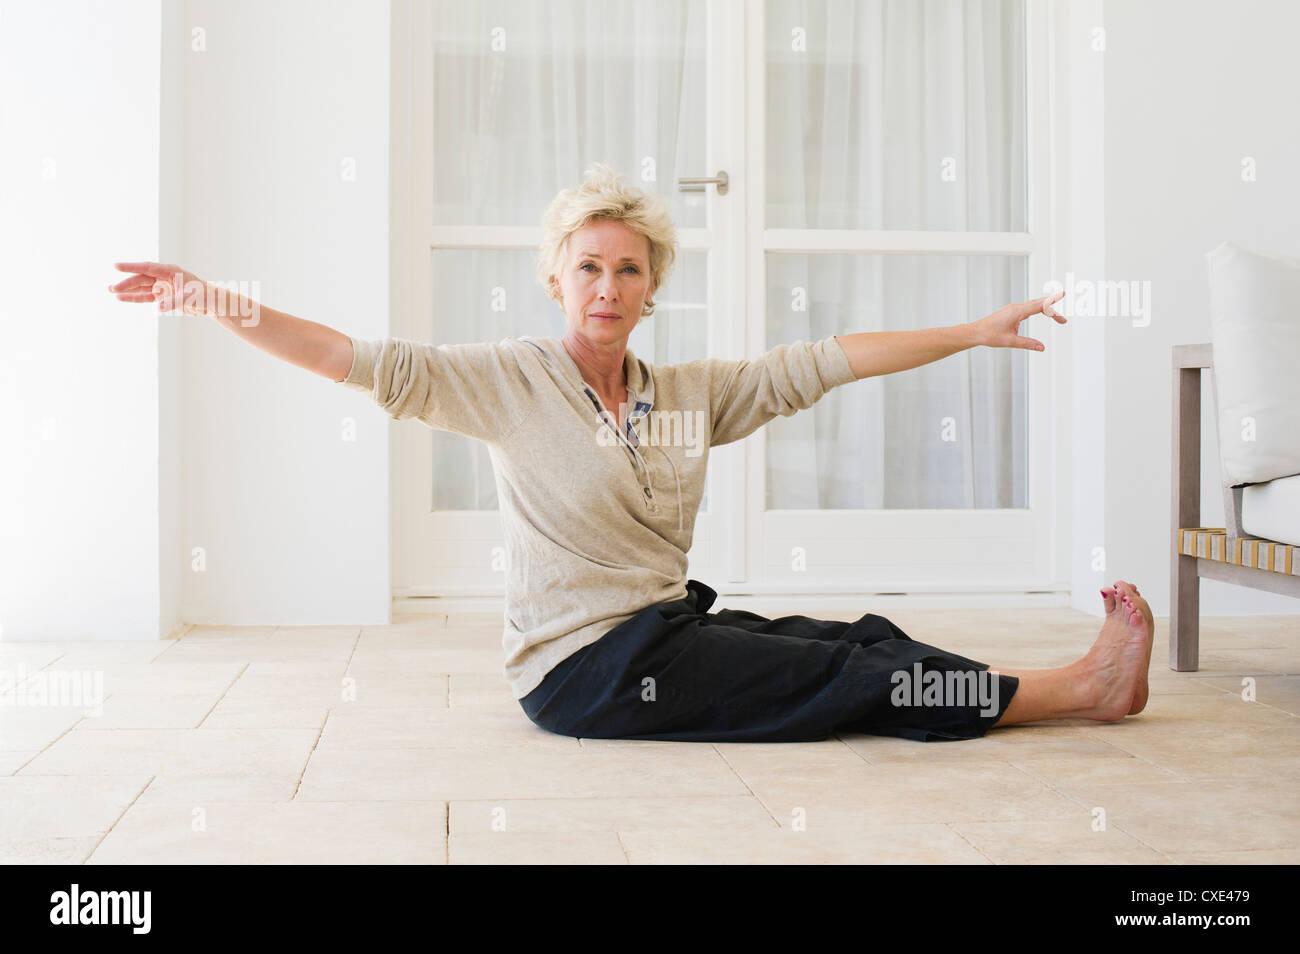 Mature woman practicing yoga on floor - Stock Image